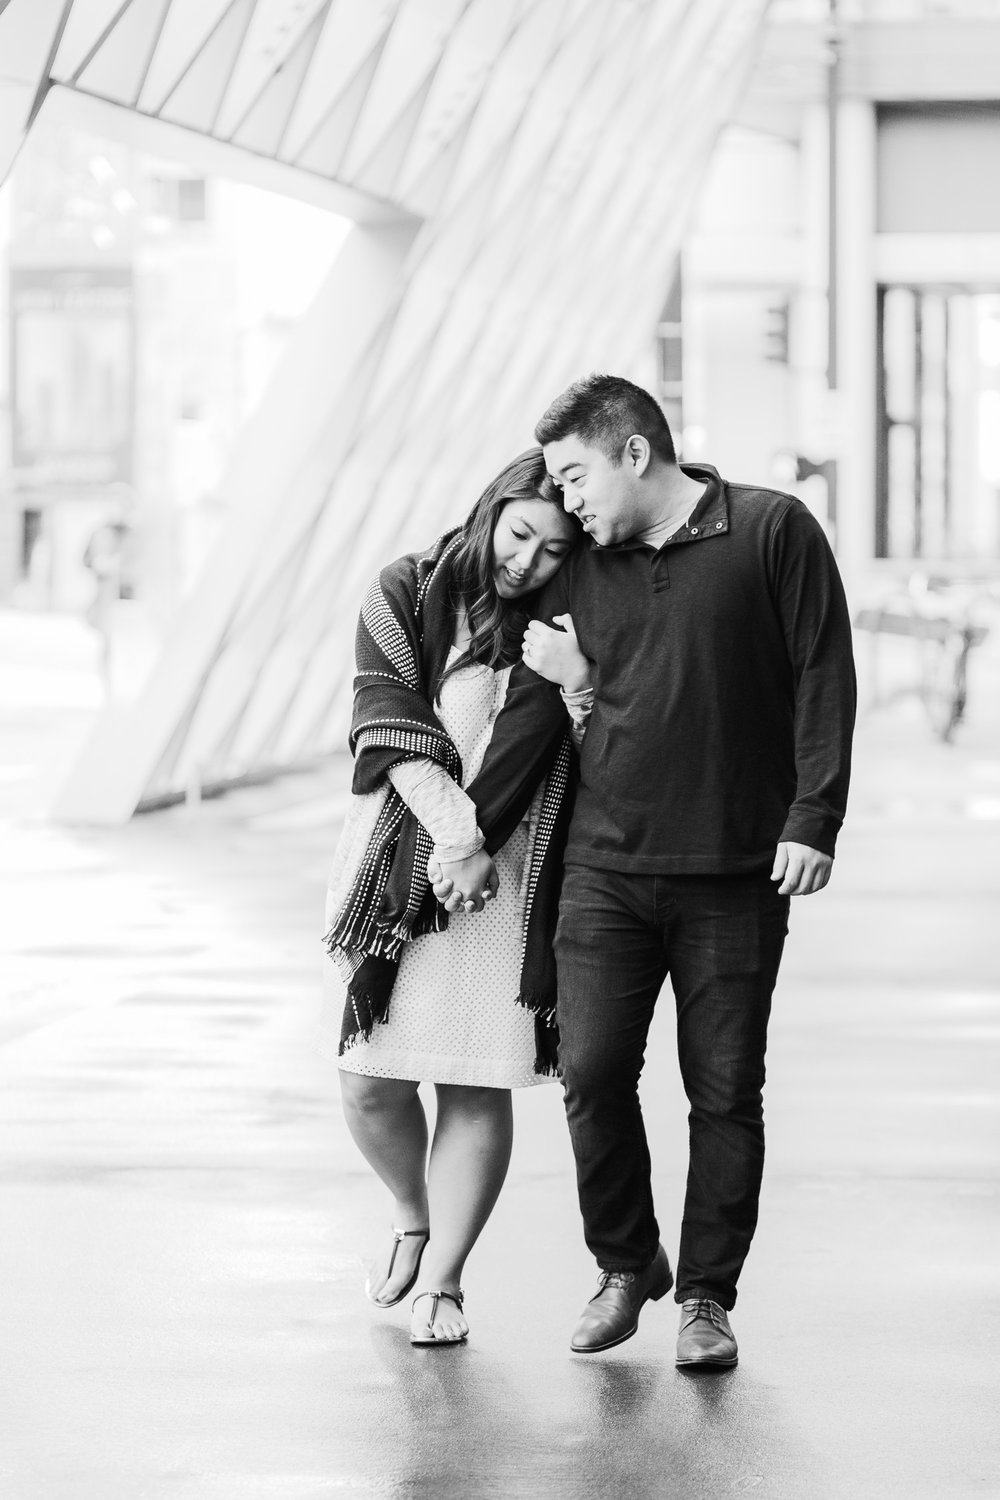 cameron-zegers-photography-engagement-seattle_0003.jpg